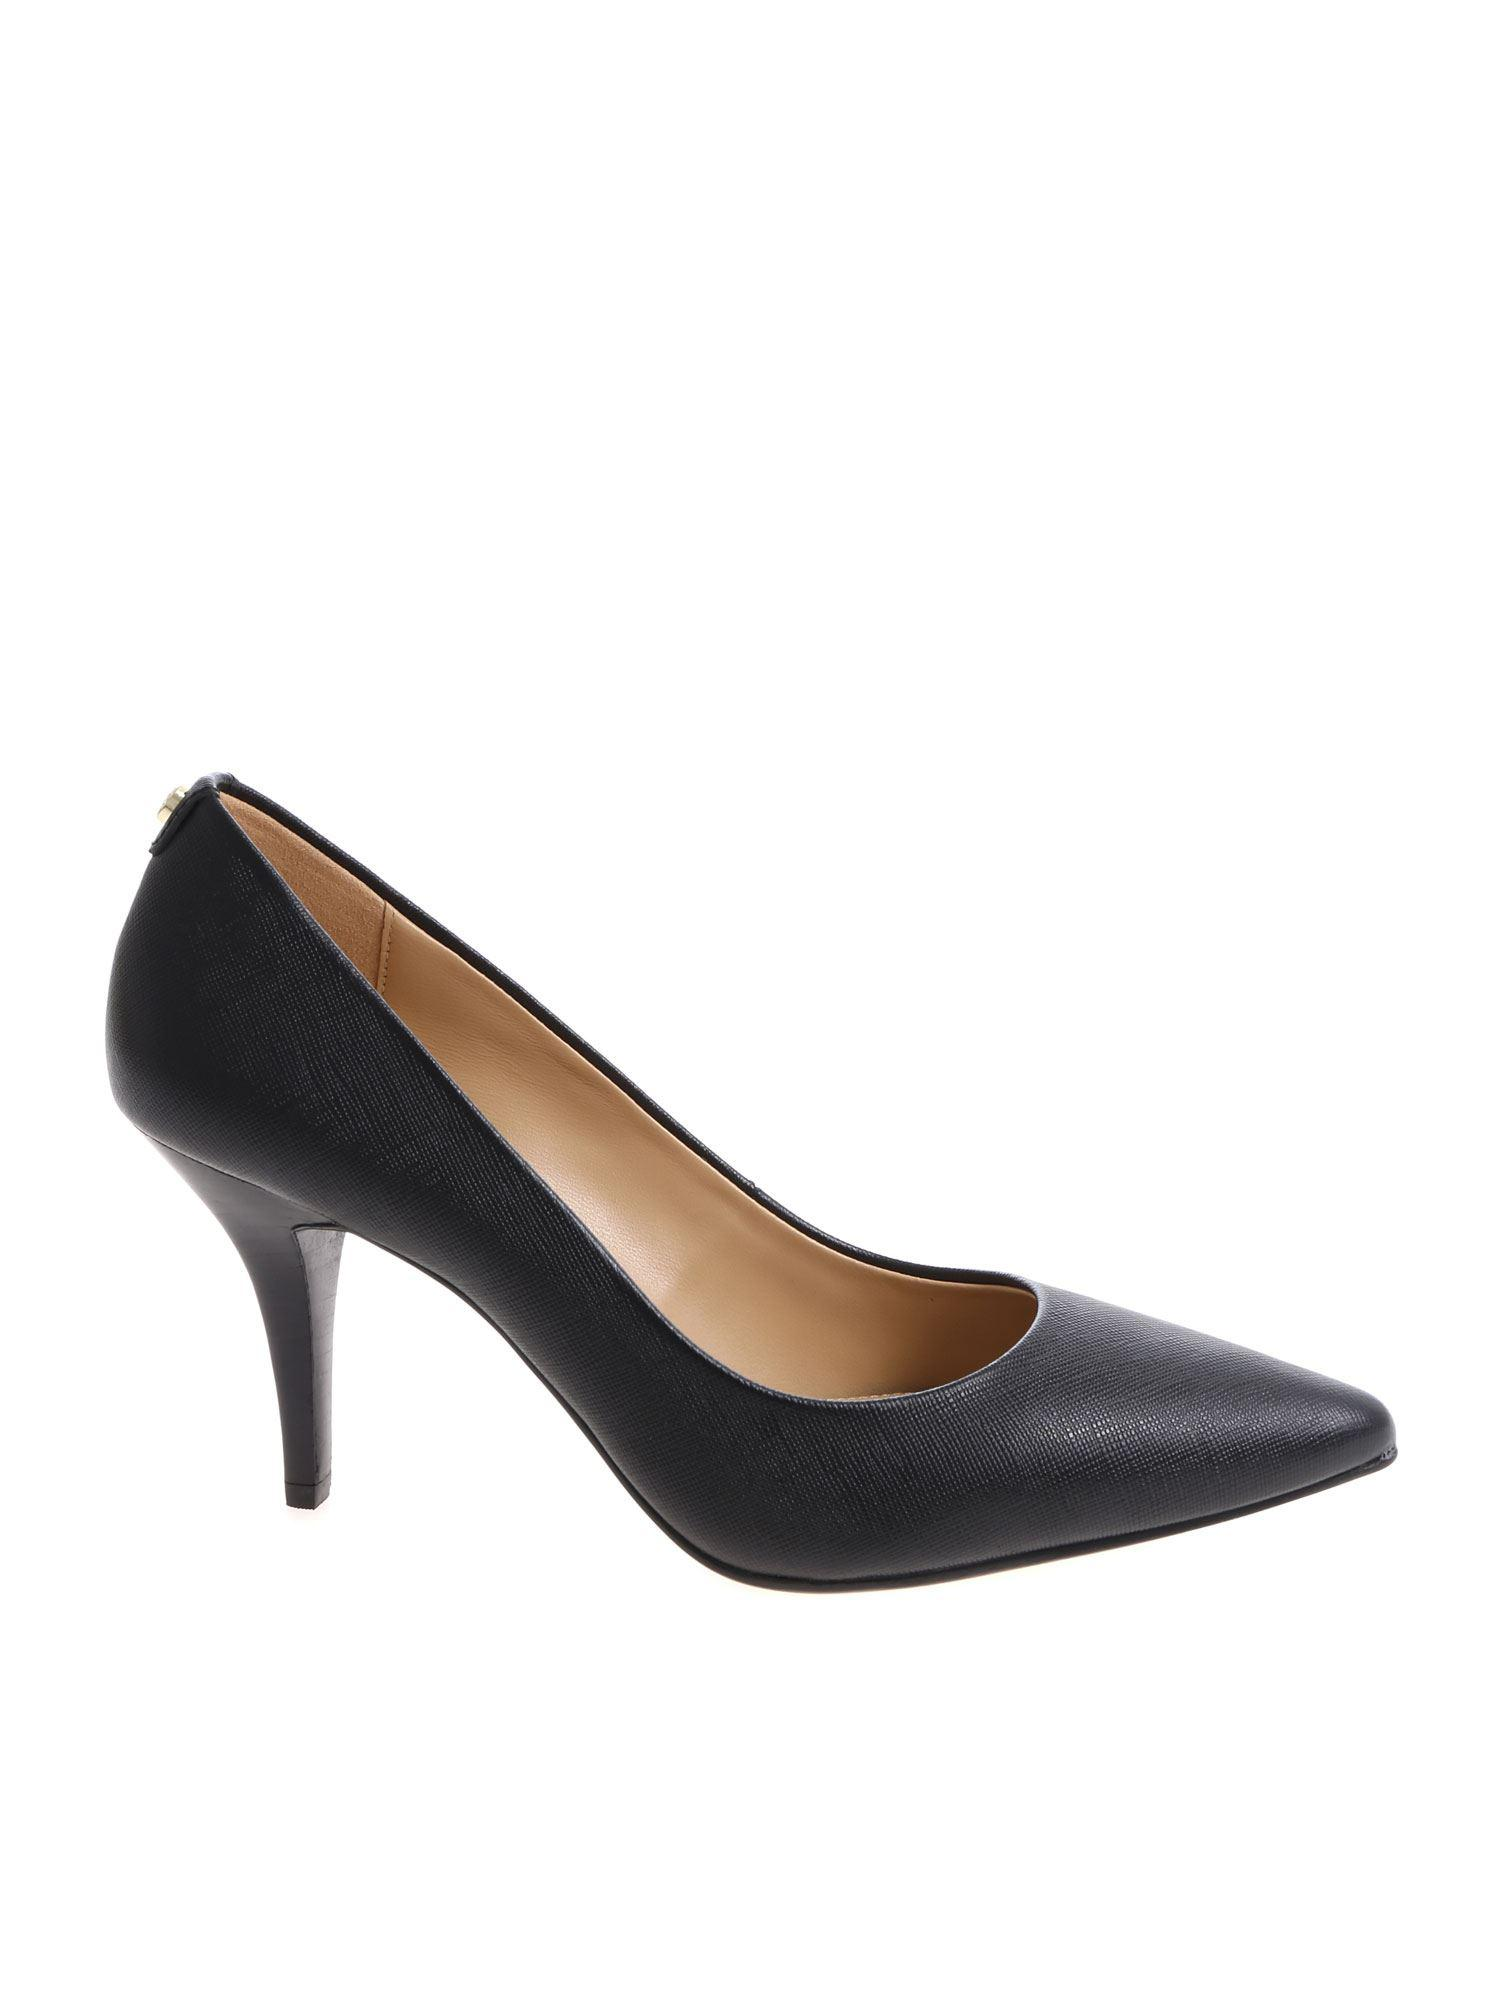 456cd75b3703 Lyst - Michael Kors Mk-flex Mid Pumps